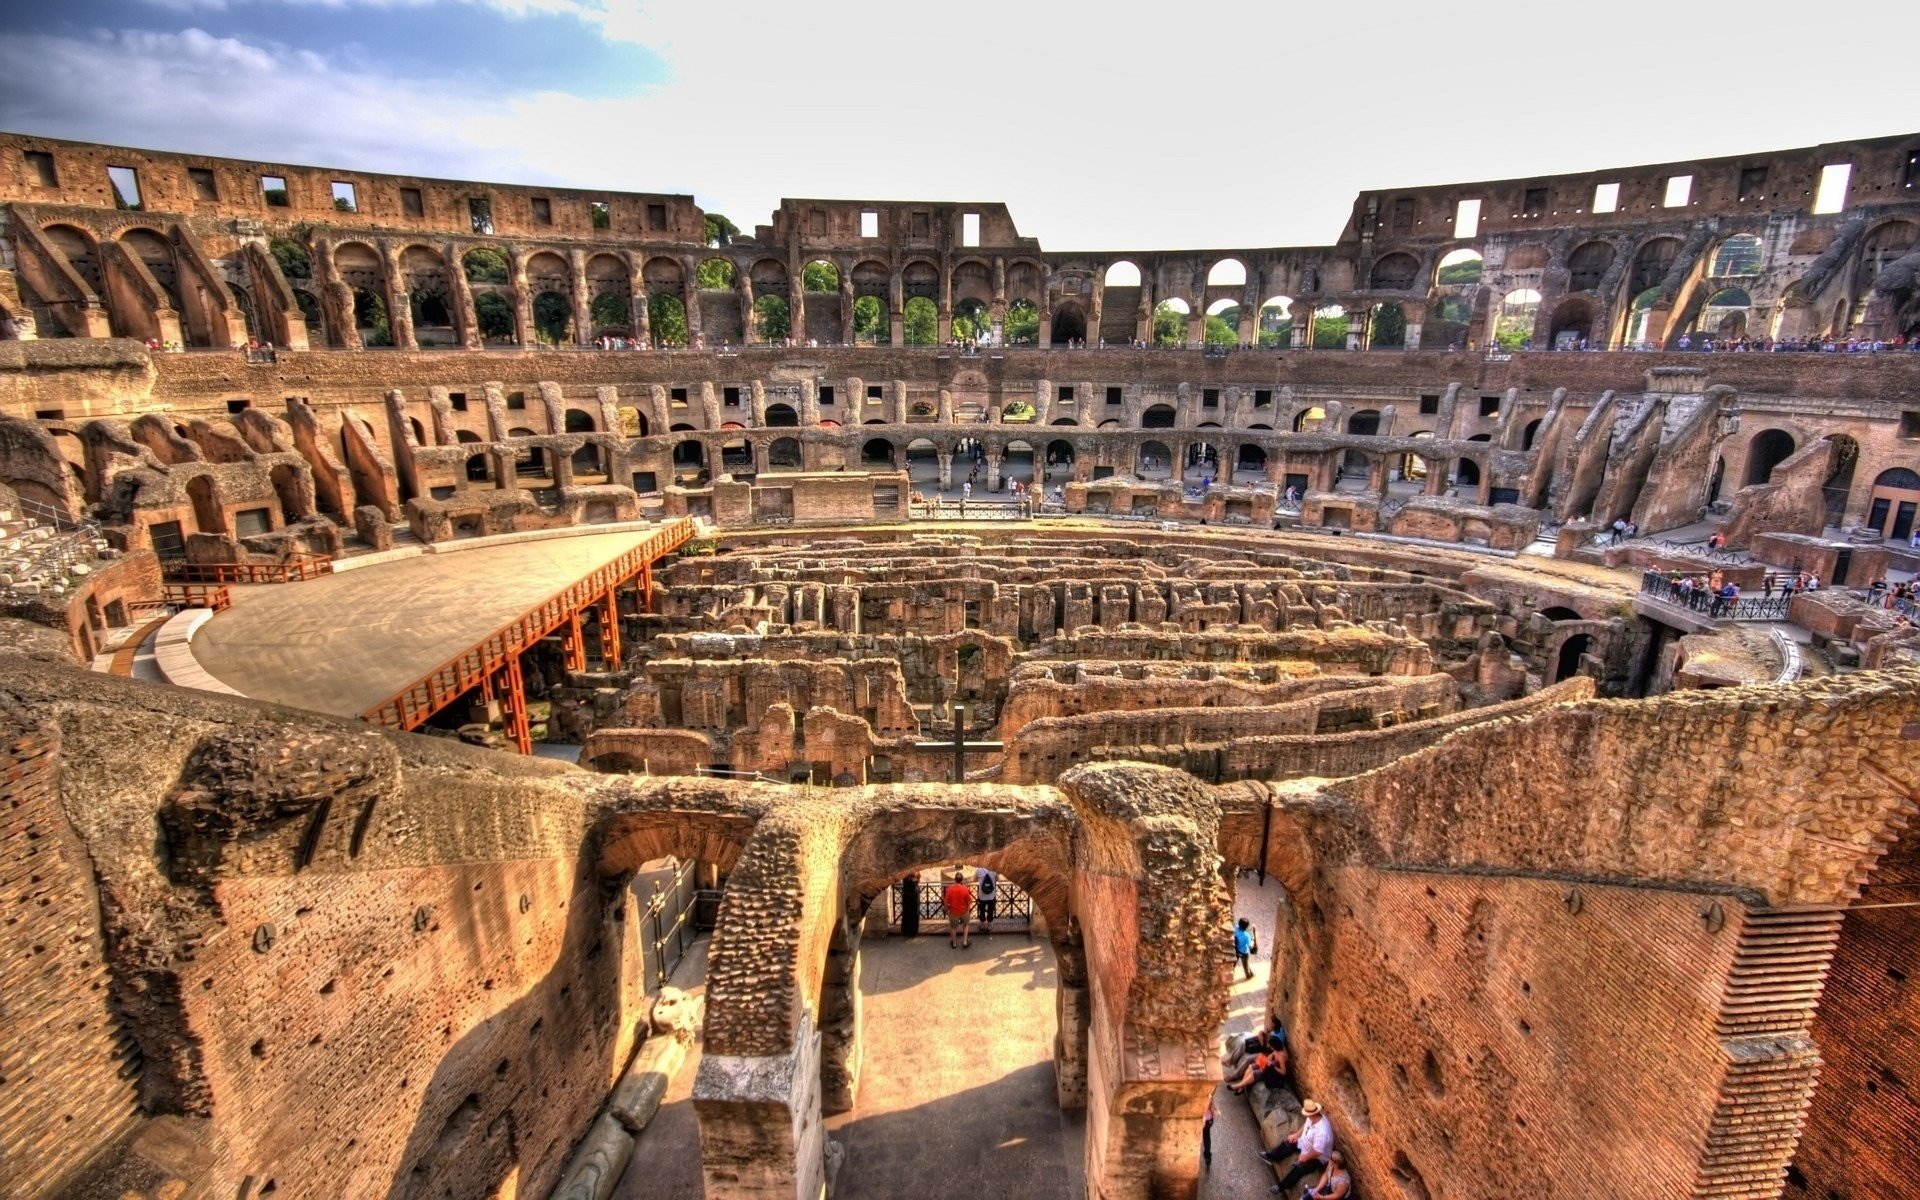 32 colosseum hd wallpapers | background images - wallpaper abyss